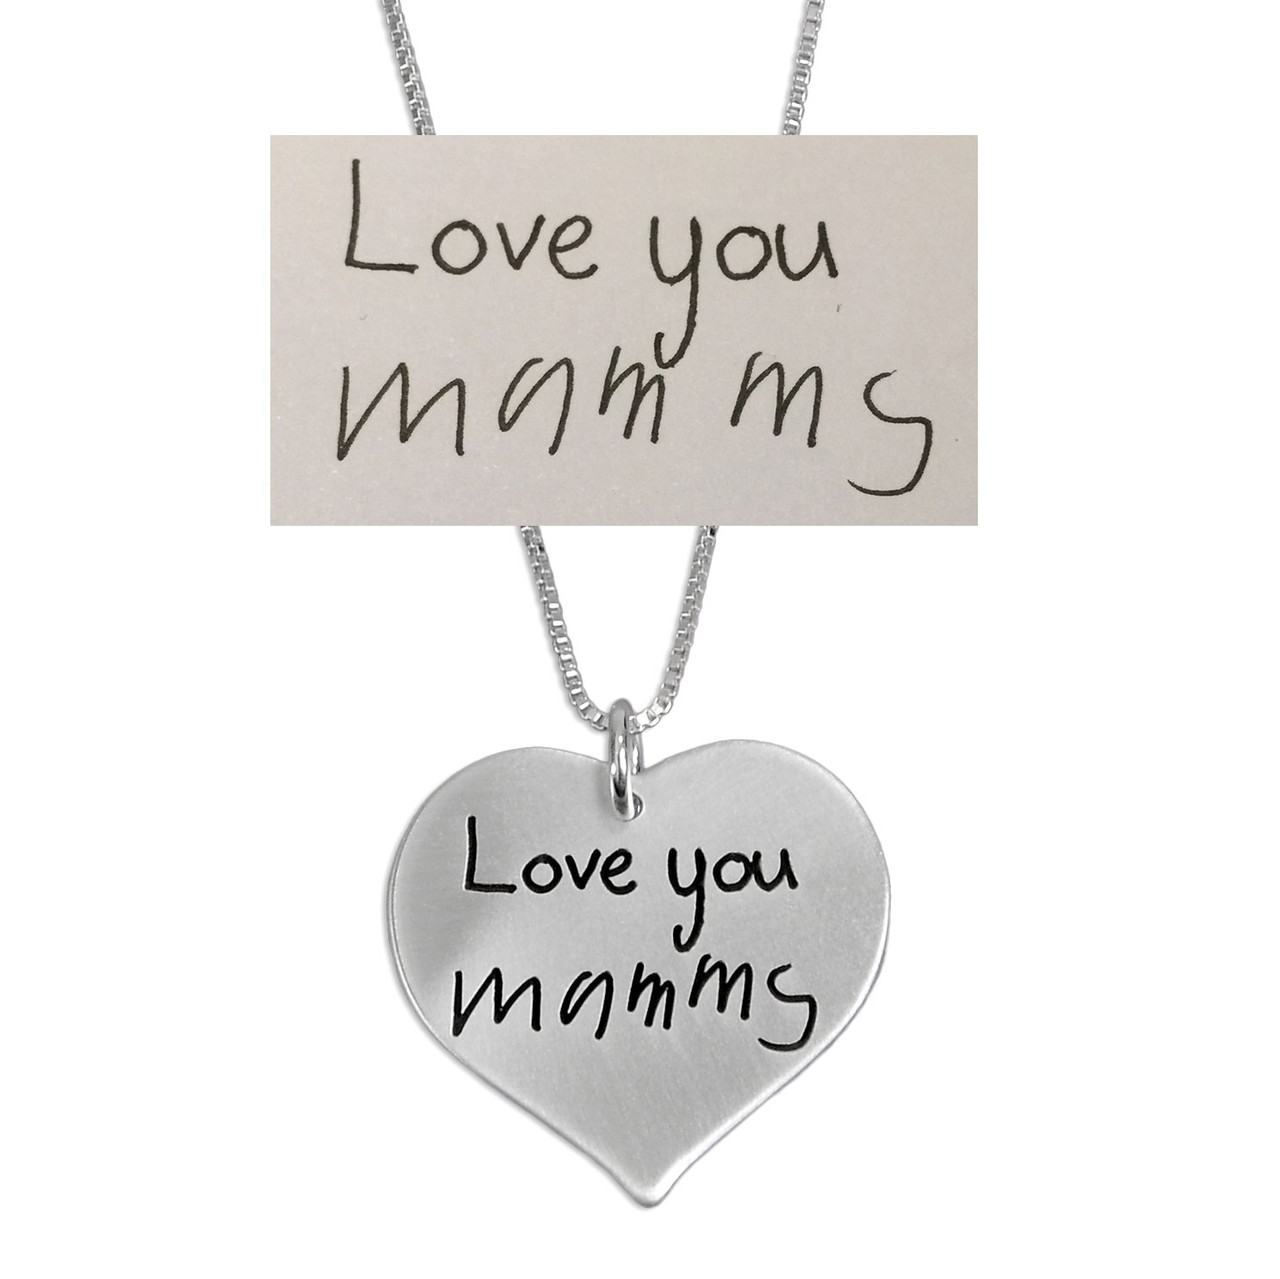 Custom Silver Heart Handwriting Necklace with your actual handwriting, shown on white, with original handwriting